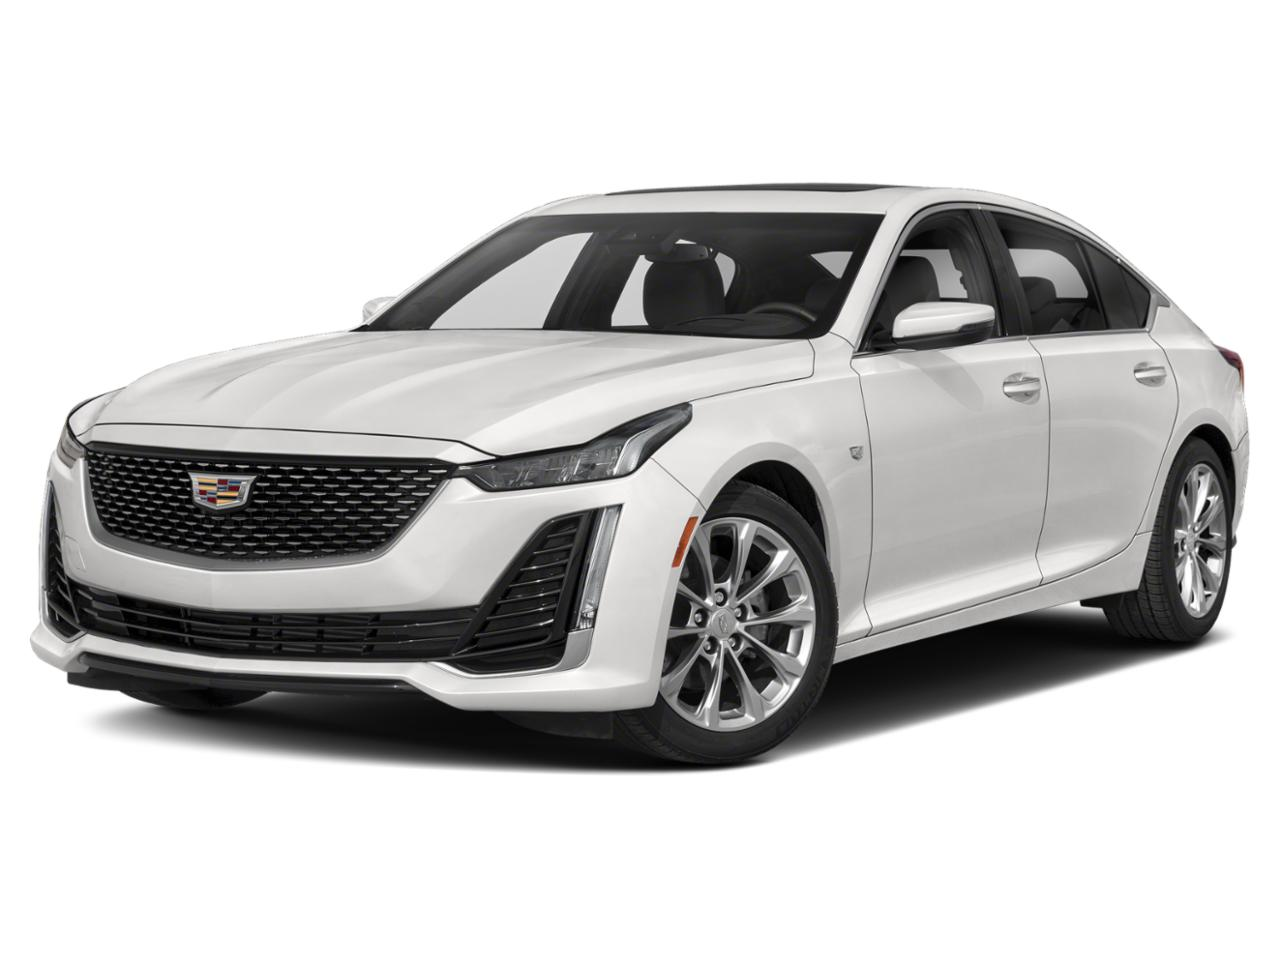 2020 Cadillac CT5 Vehicle Photo in Dallas, TX 75209